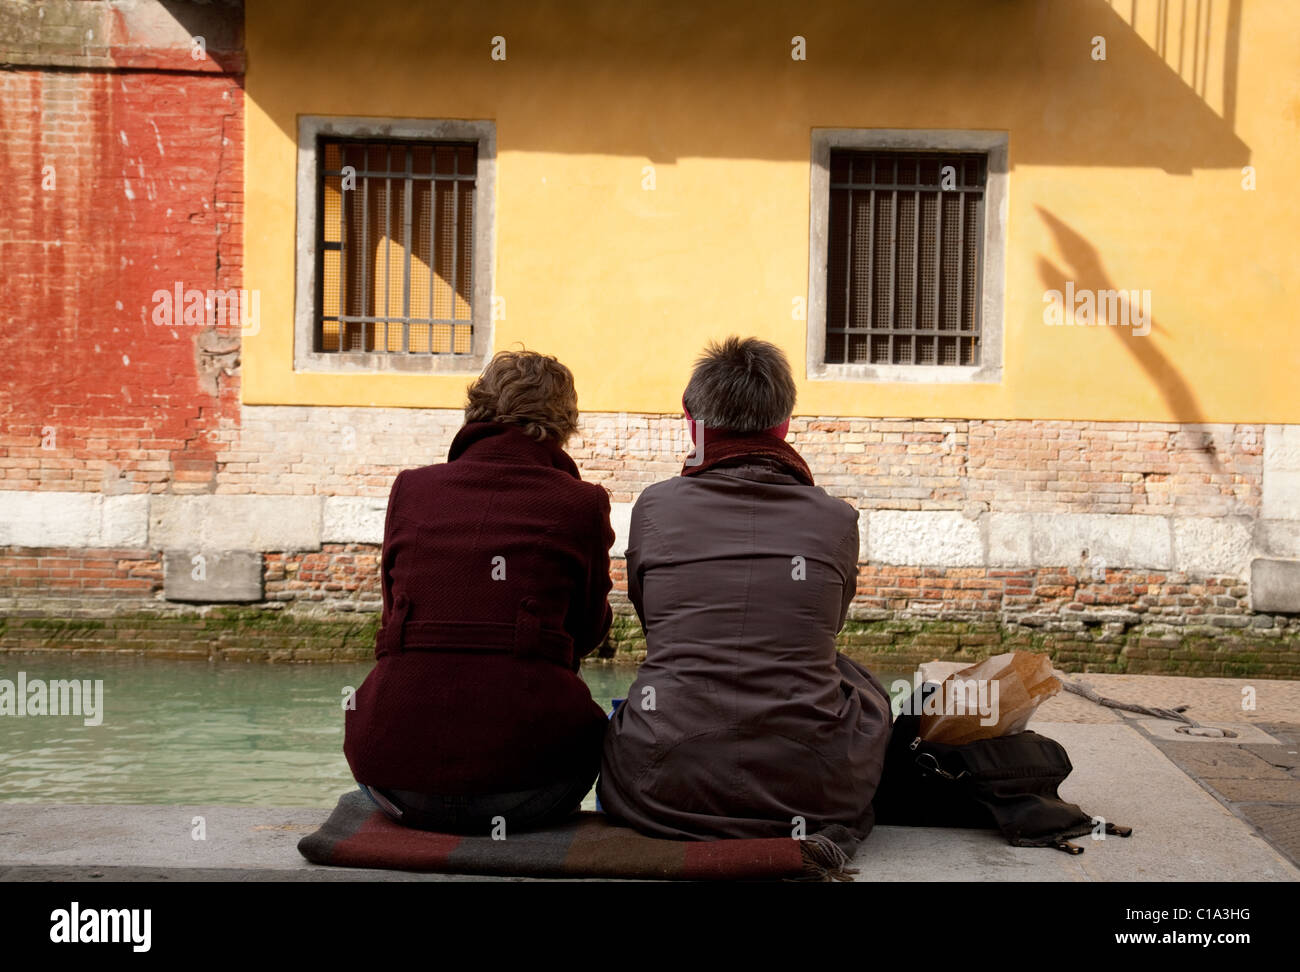 a-copule-sitting-by-the-canal-in-venice-italy-C1A3HG.jpg